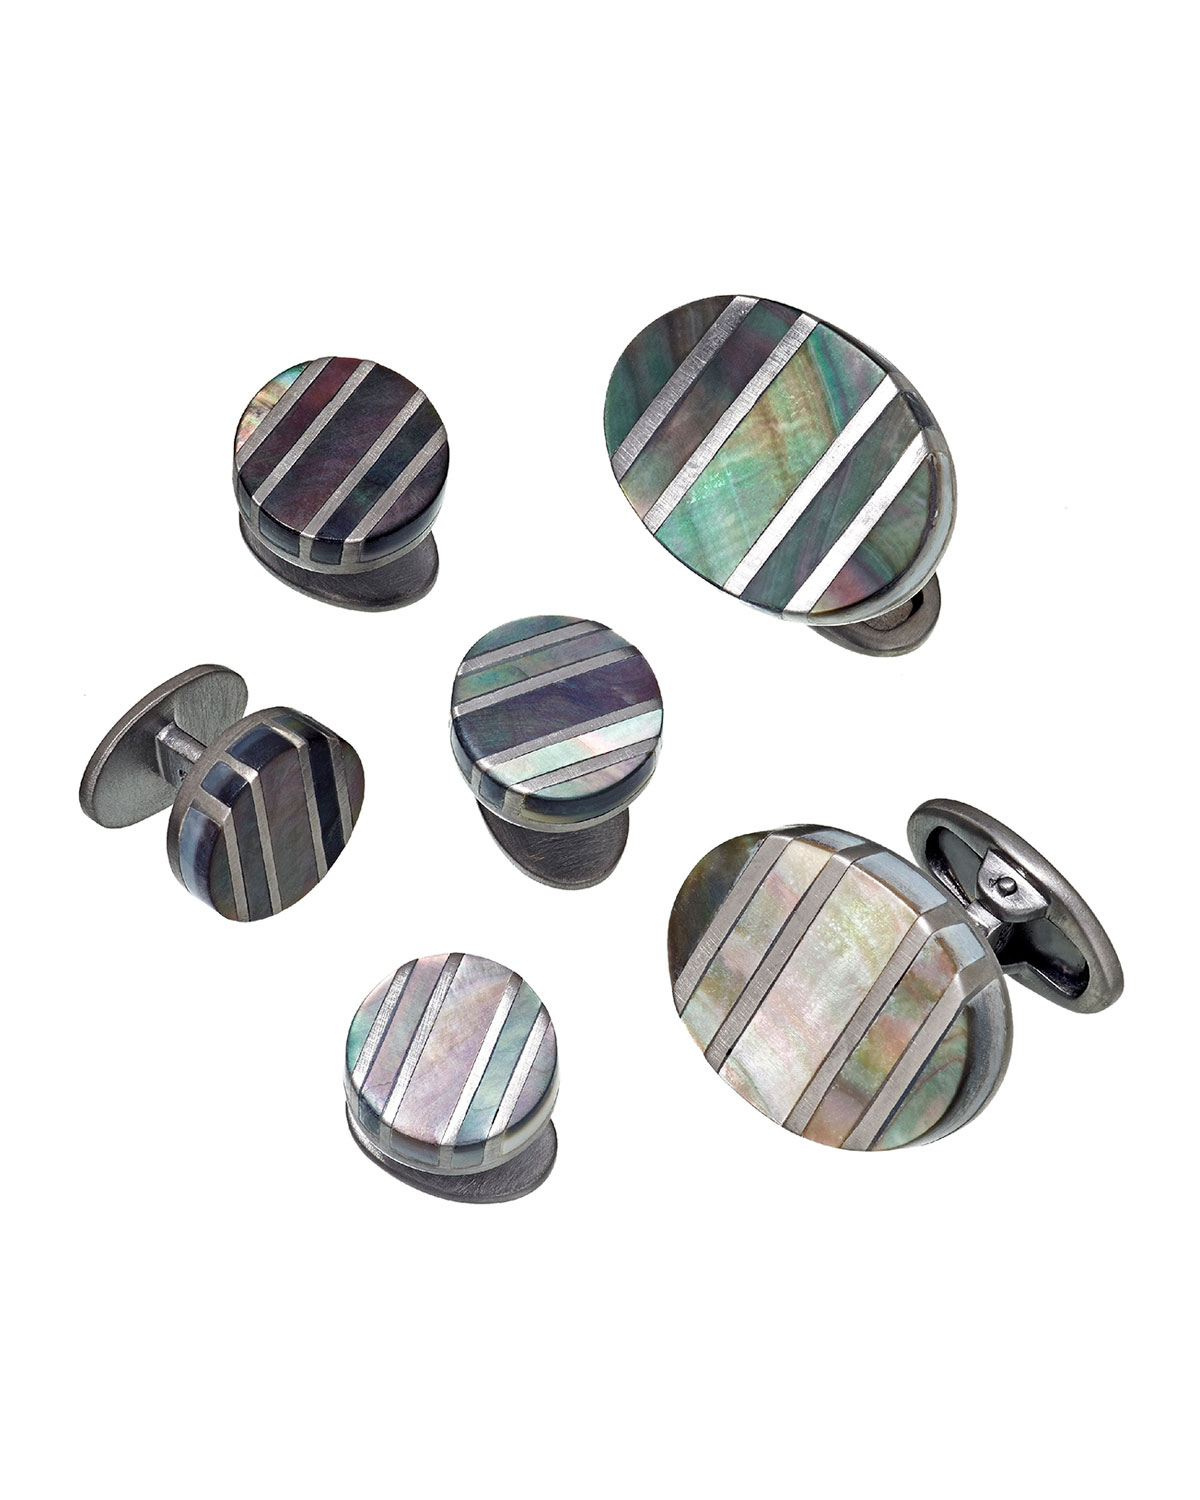 Jan Leslie Tops OVAL CUFFLINKS & STUD SETS WITH MOTHER-OF-PEARL STRIPES